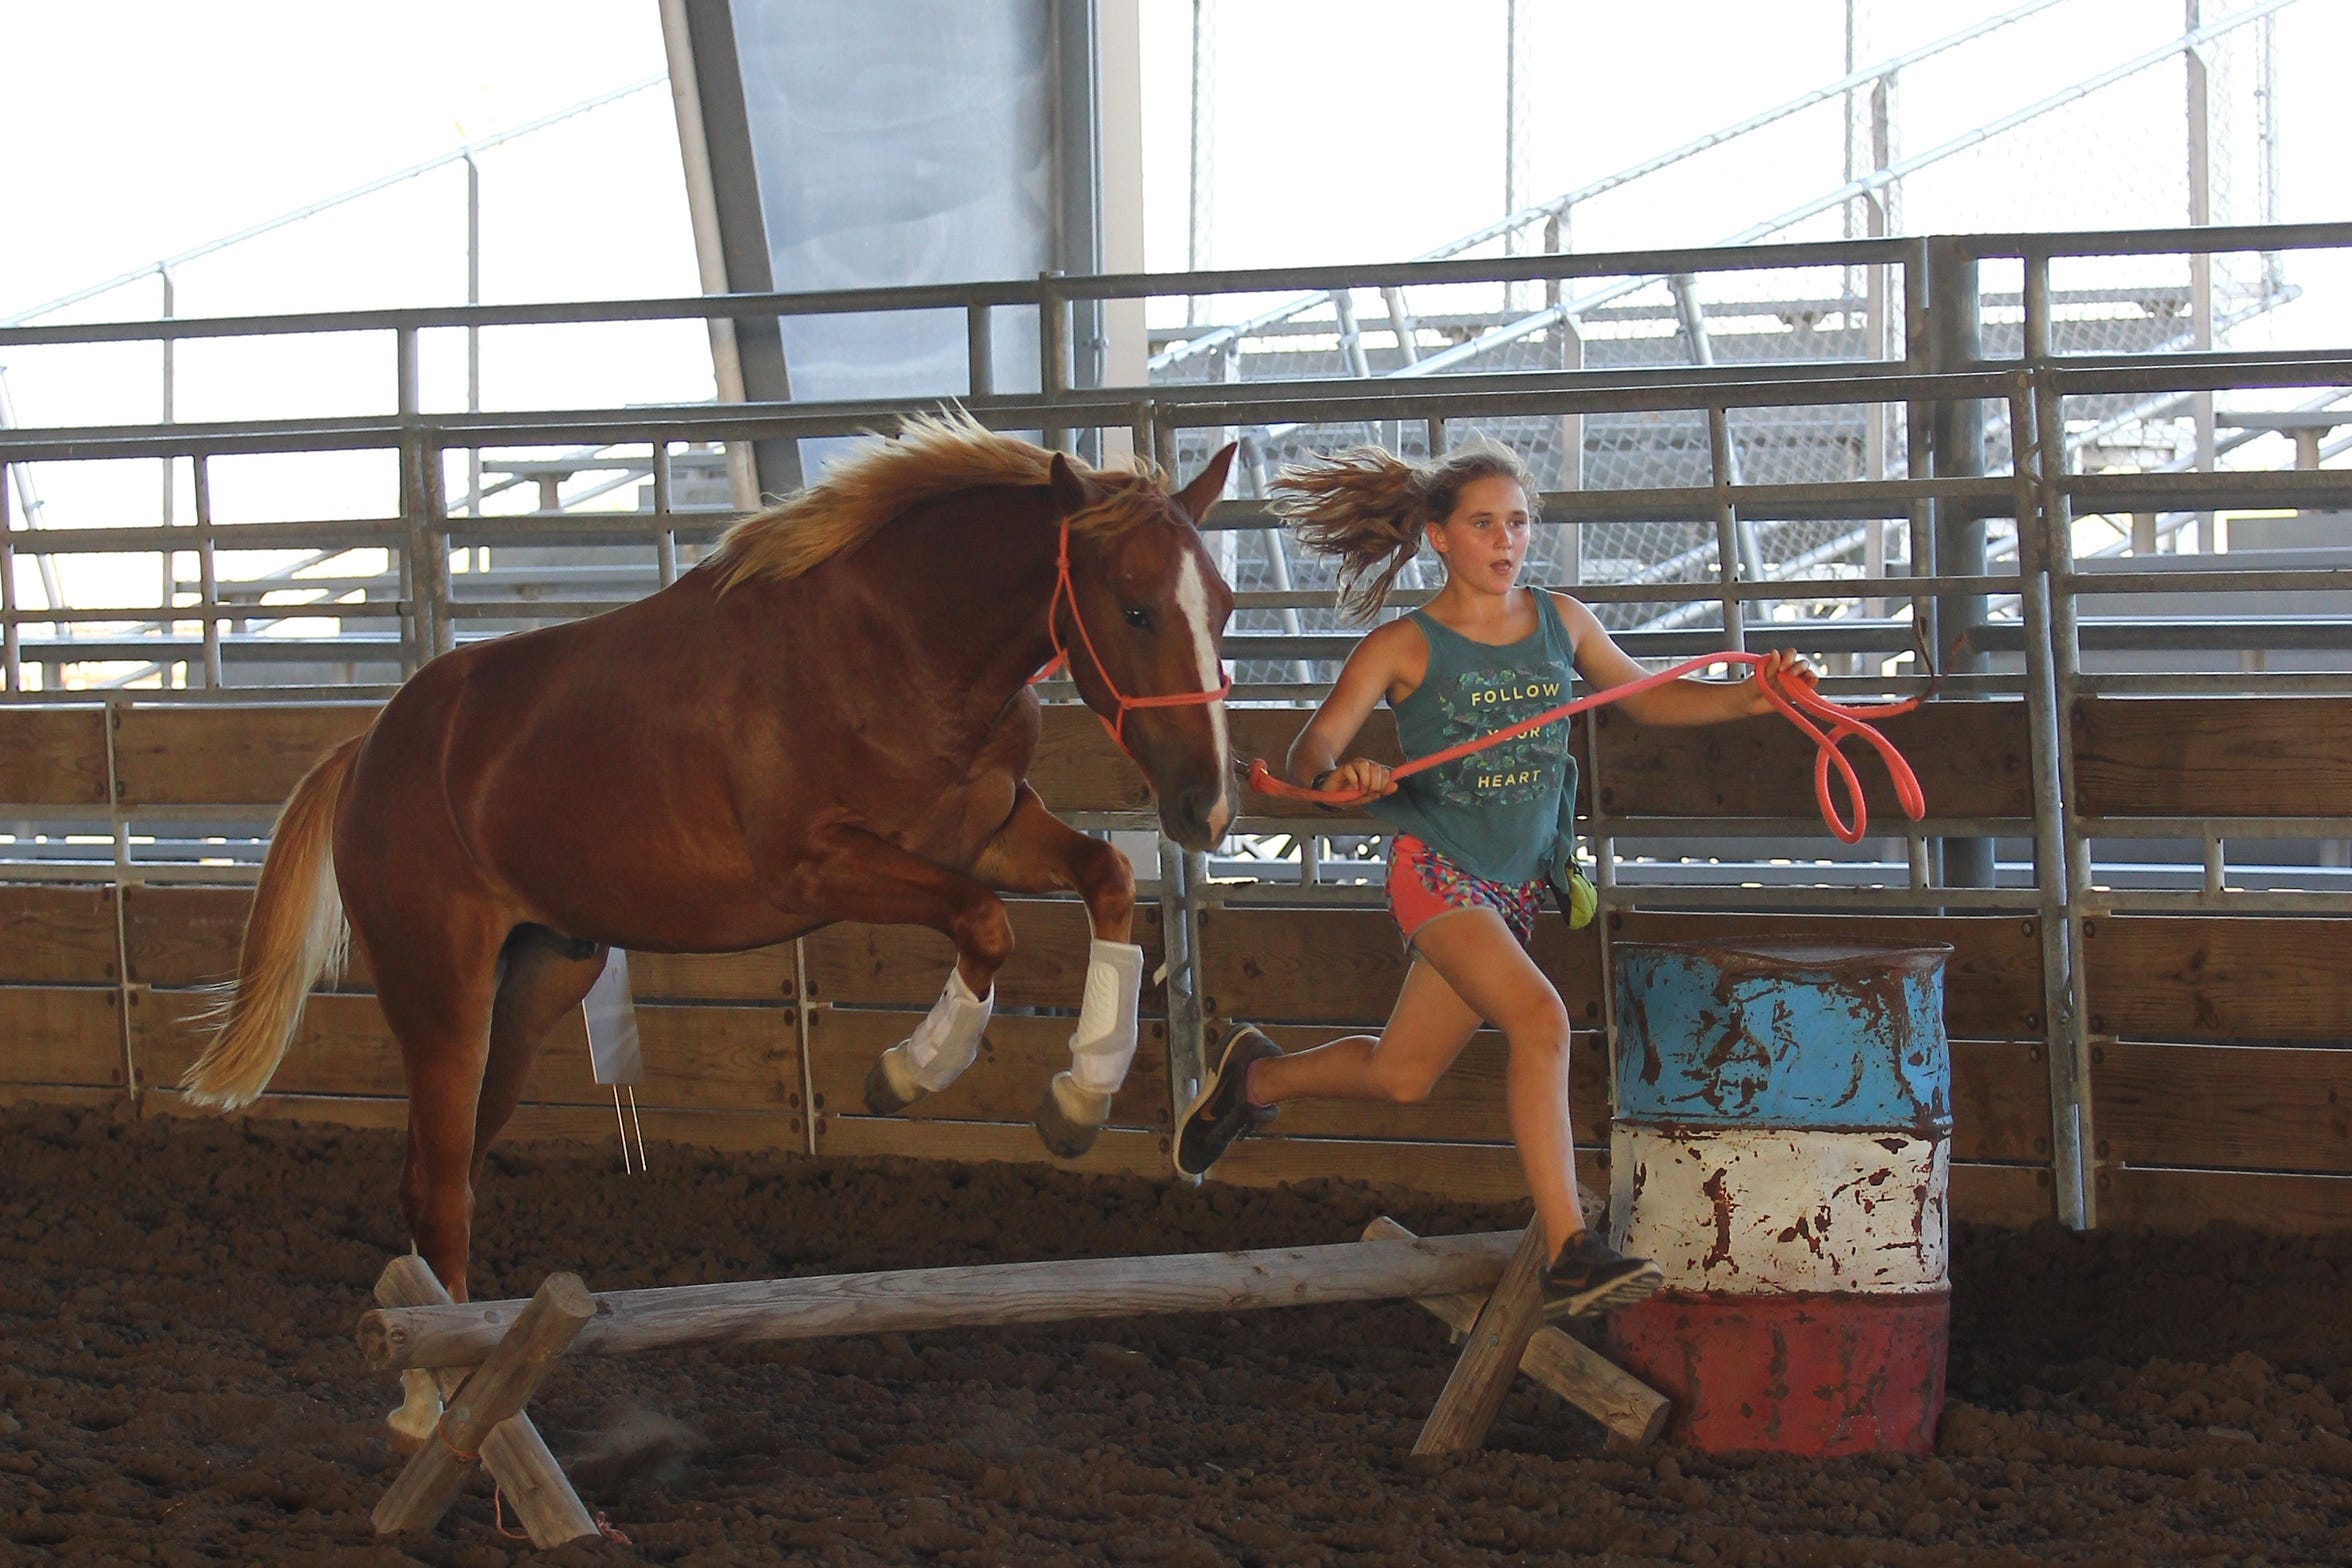 Frances Walsh, 11, trains a young mustang for this week's Extreme Mustang Makeover competition in Fort Worth.